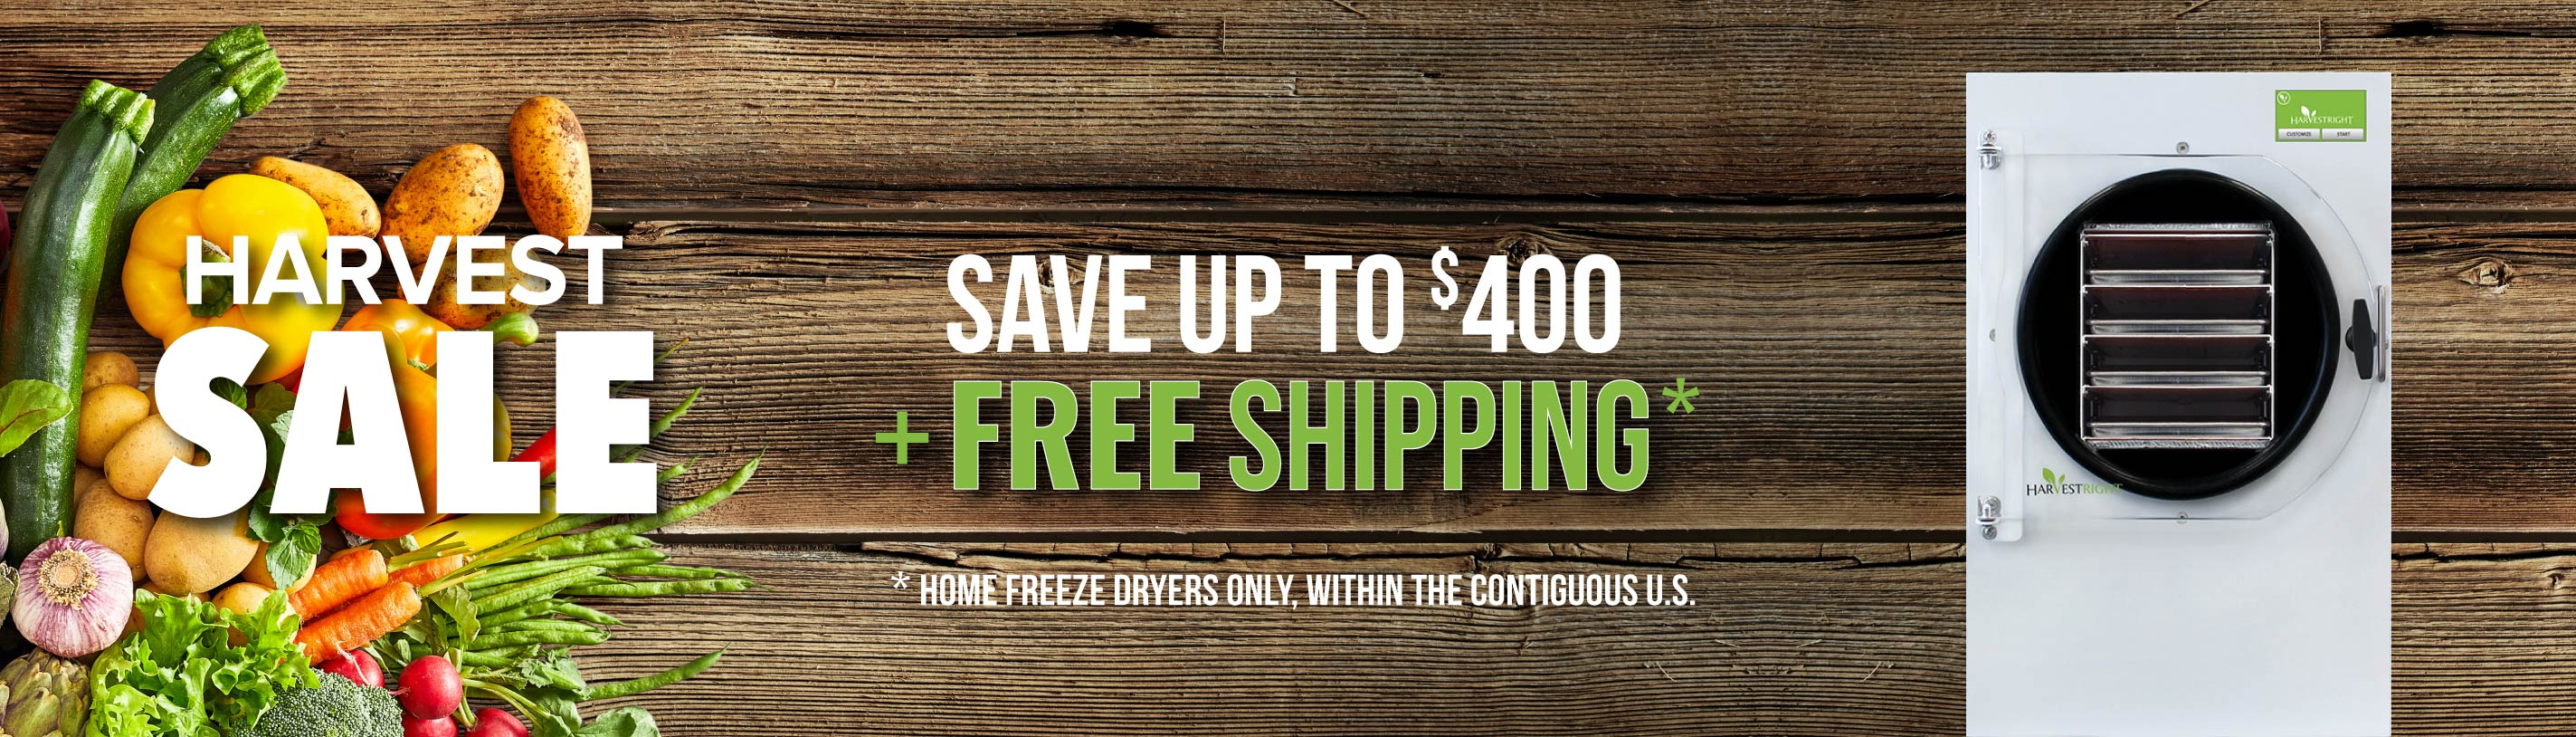 Harvest sale save up to $400 + free shipping* *Home freeze dryers only, within the contiguous U.S.